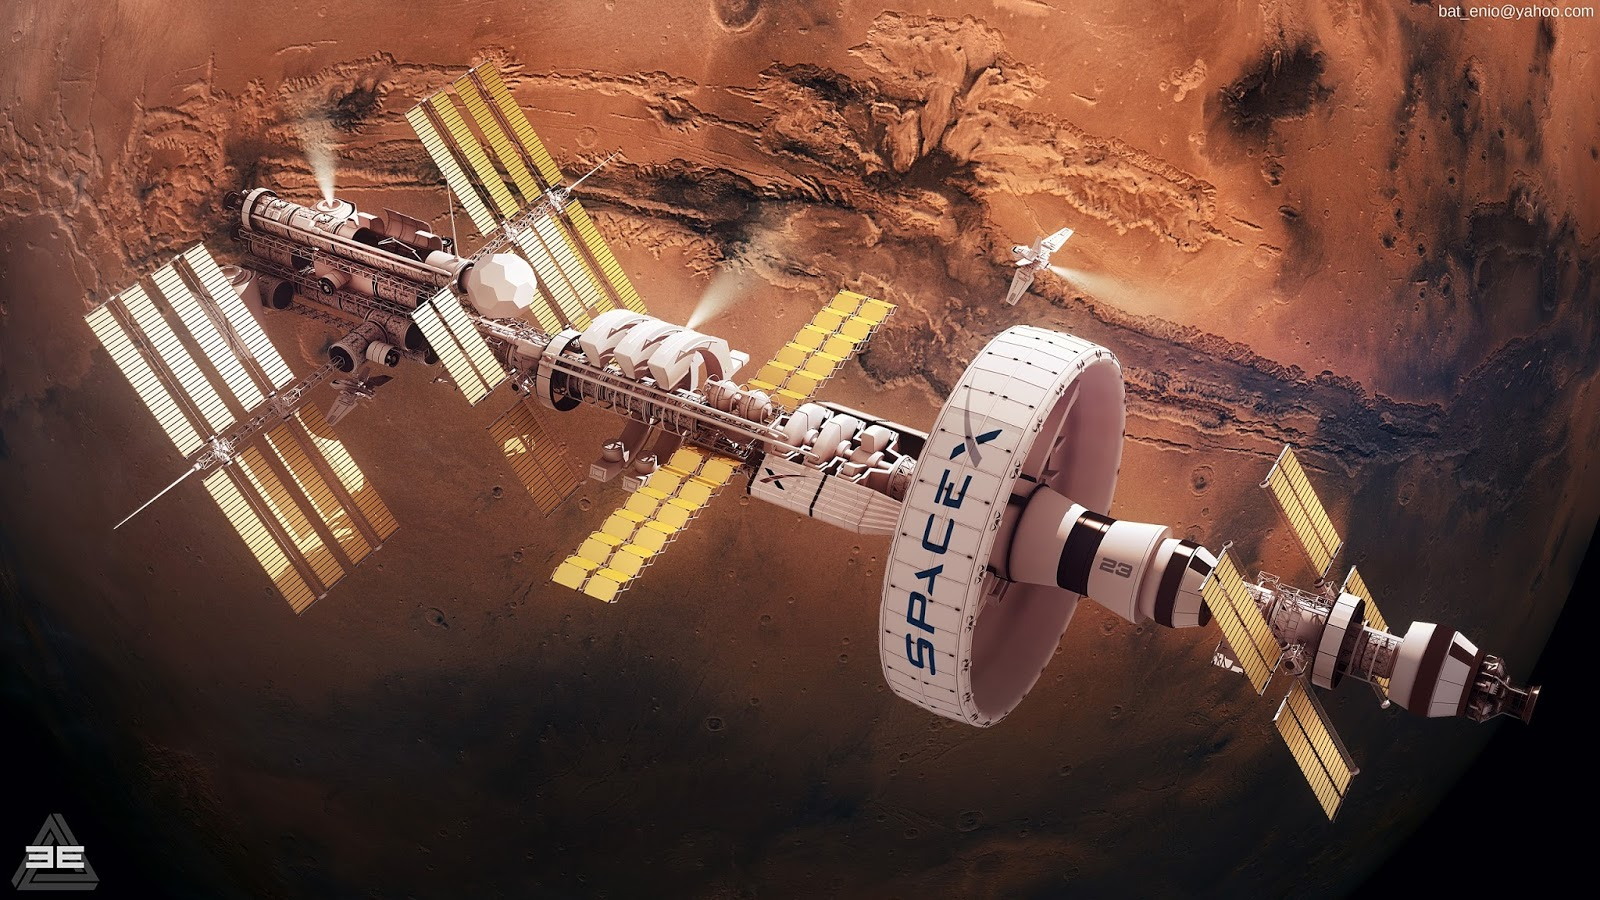 Concept art for SpaceX Mars orbital station by Encho Enchev